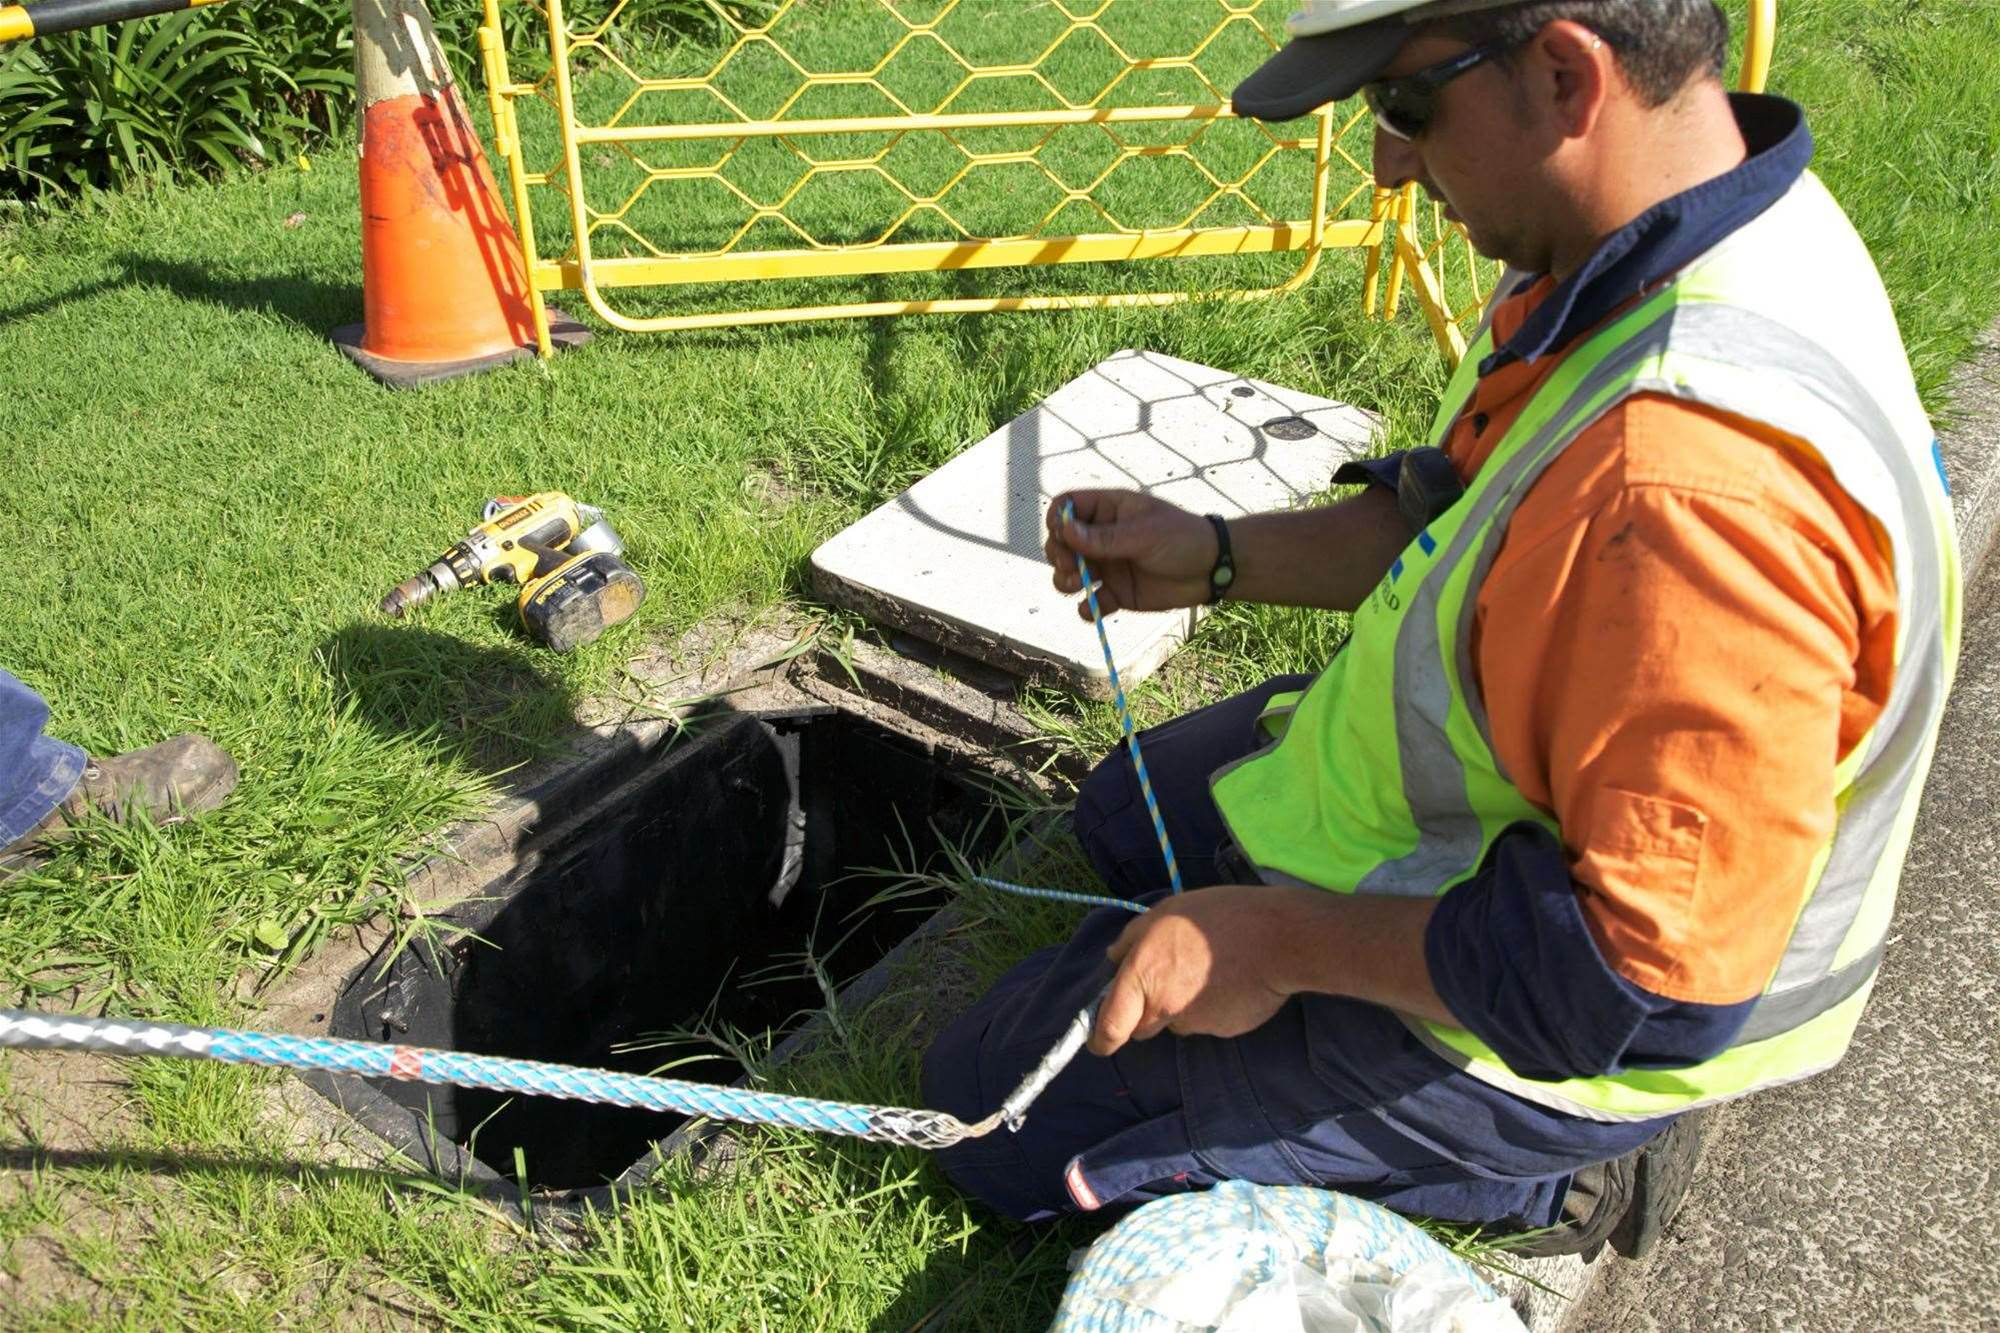 NBN Co to train half of workers in 'months'